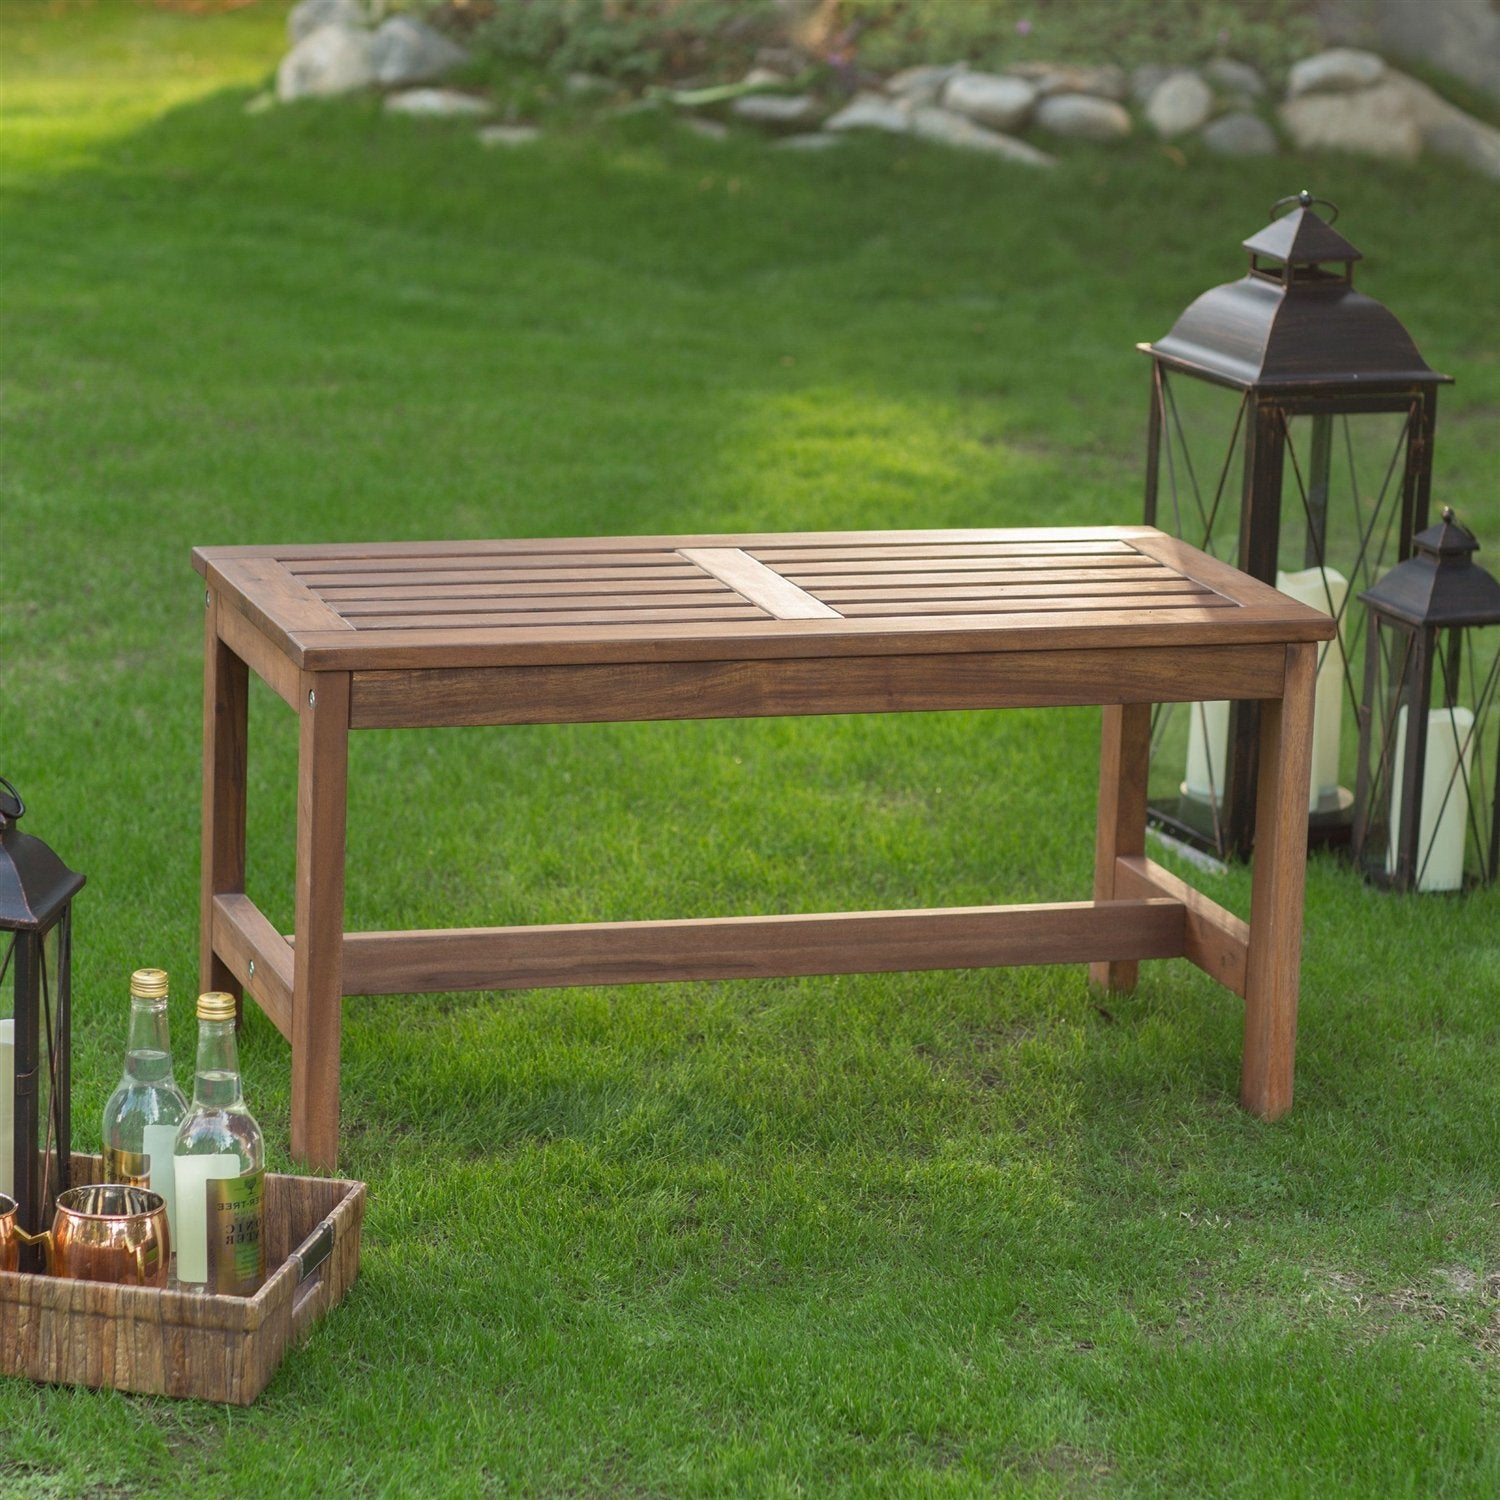 3-Ft Outdoor Backless Garden Bench in Dark Brown Wood Finish